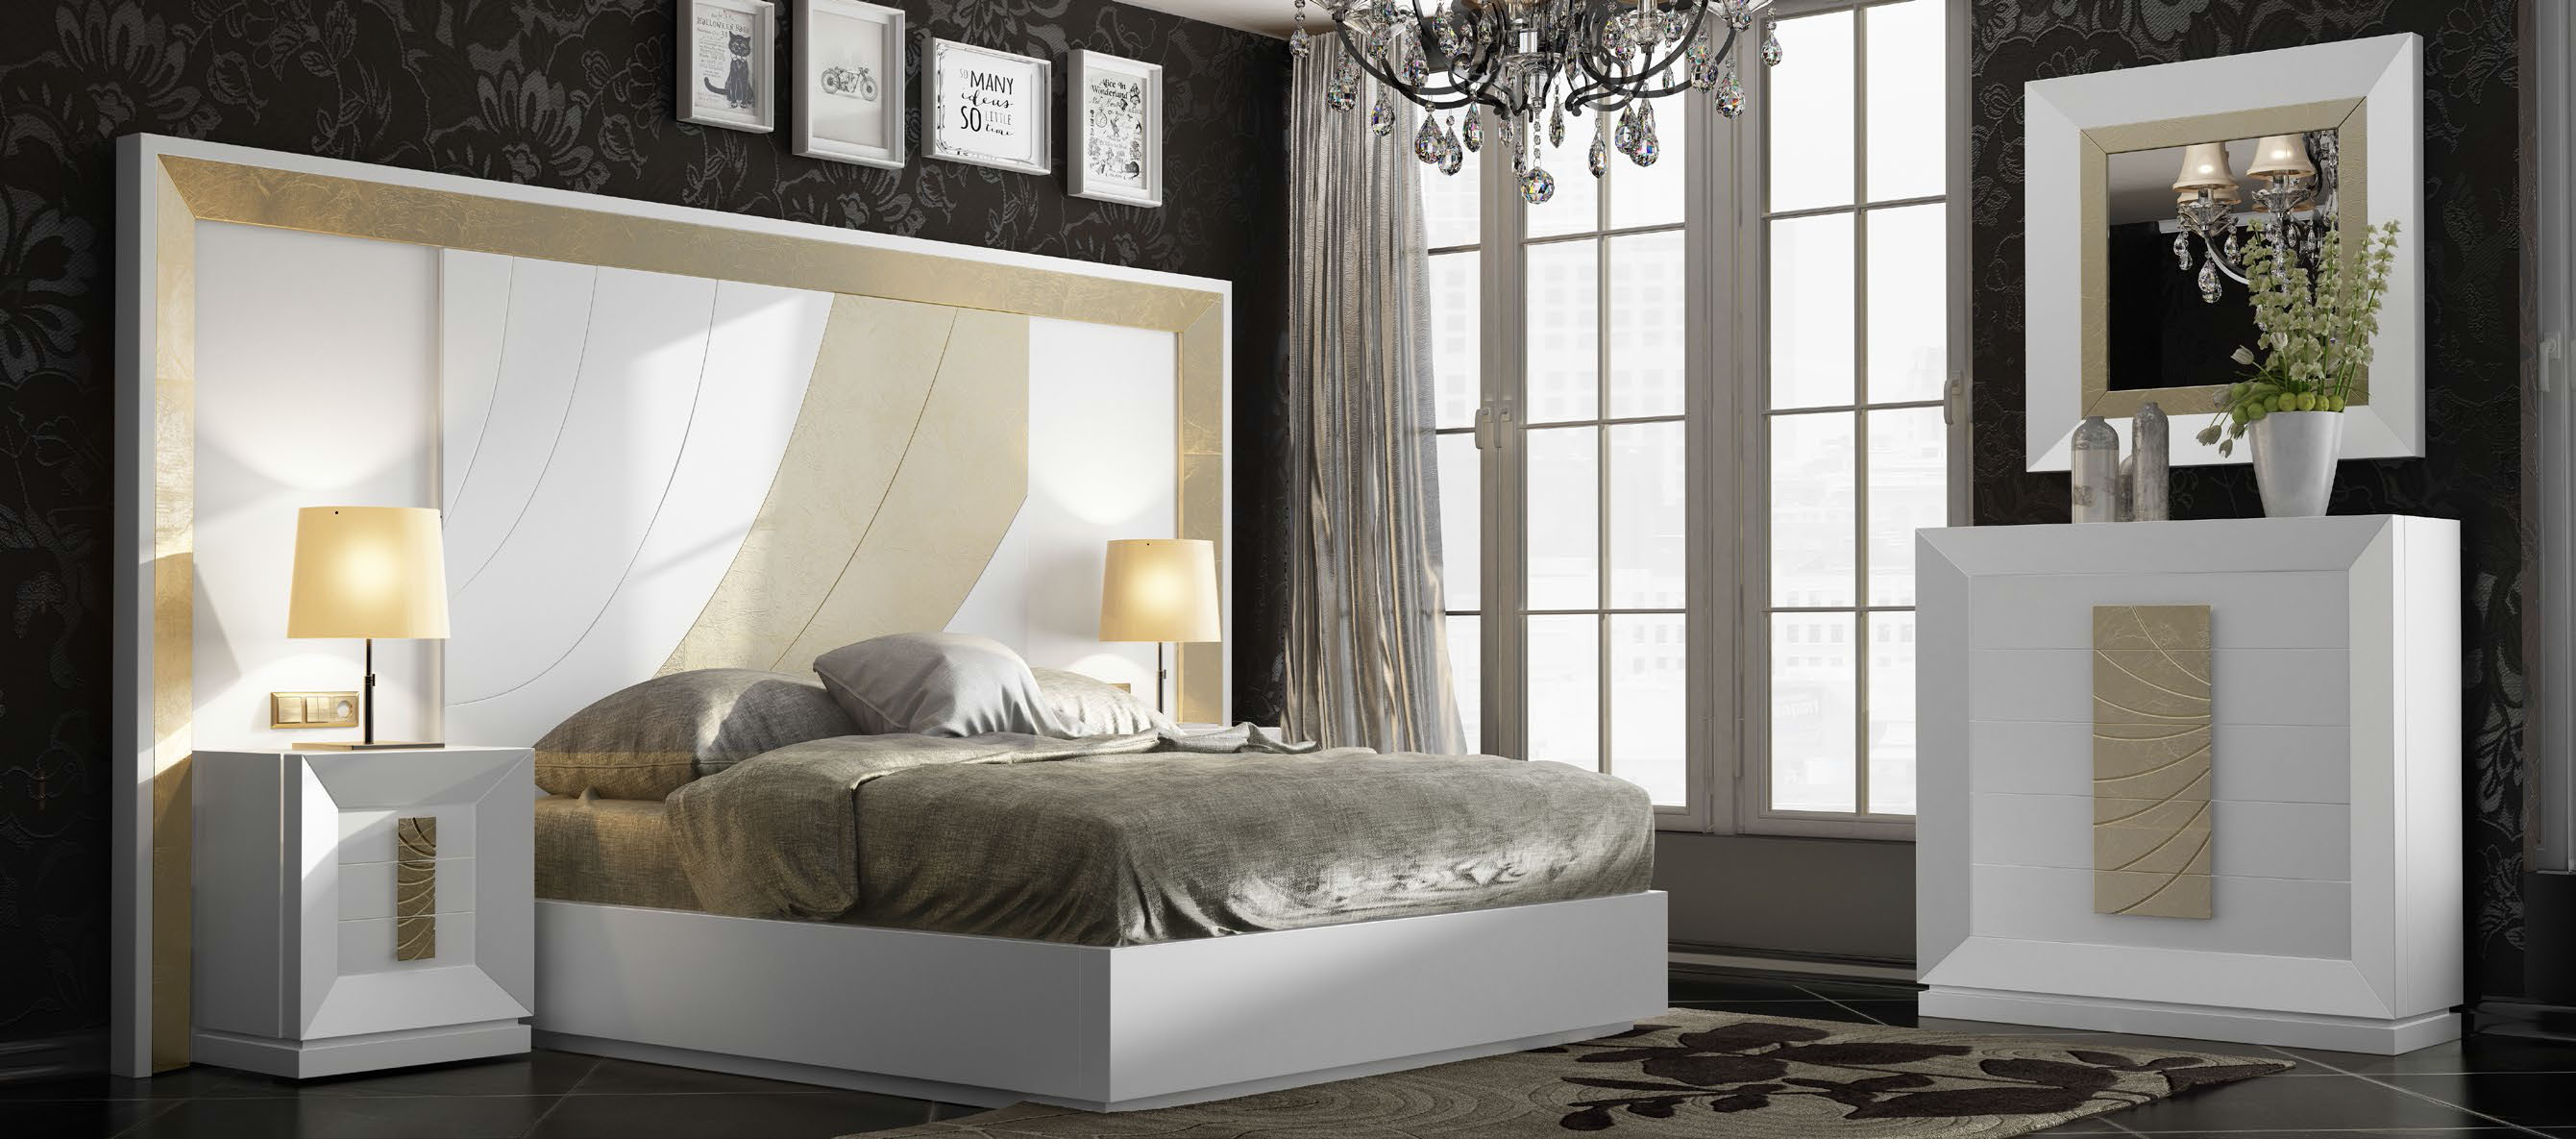 Brands Franco Furniture Bedrooms vol2, Spain DOR 130